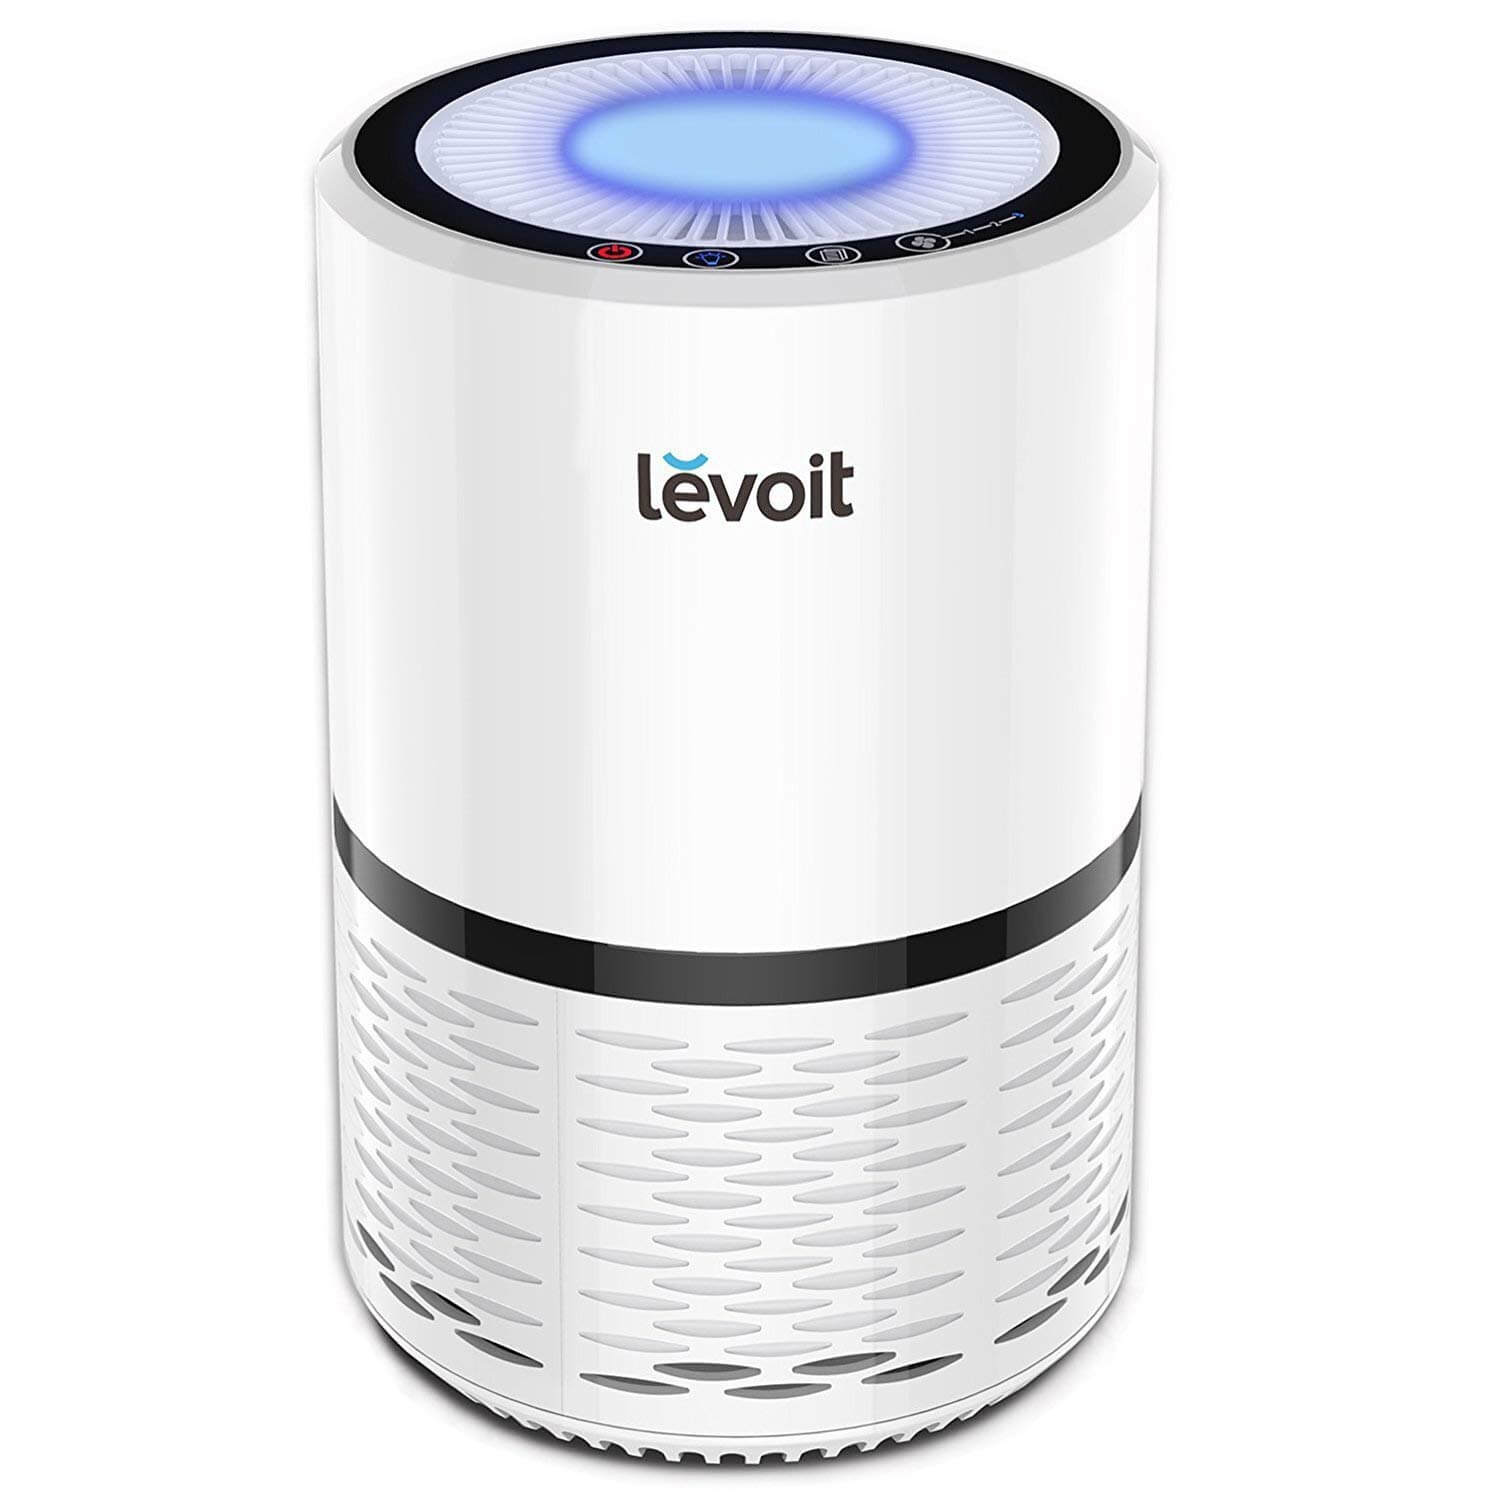 Levoit Air Purifier with True HEPA & Active Carbon Filters, Compact Purifiers Filtration